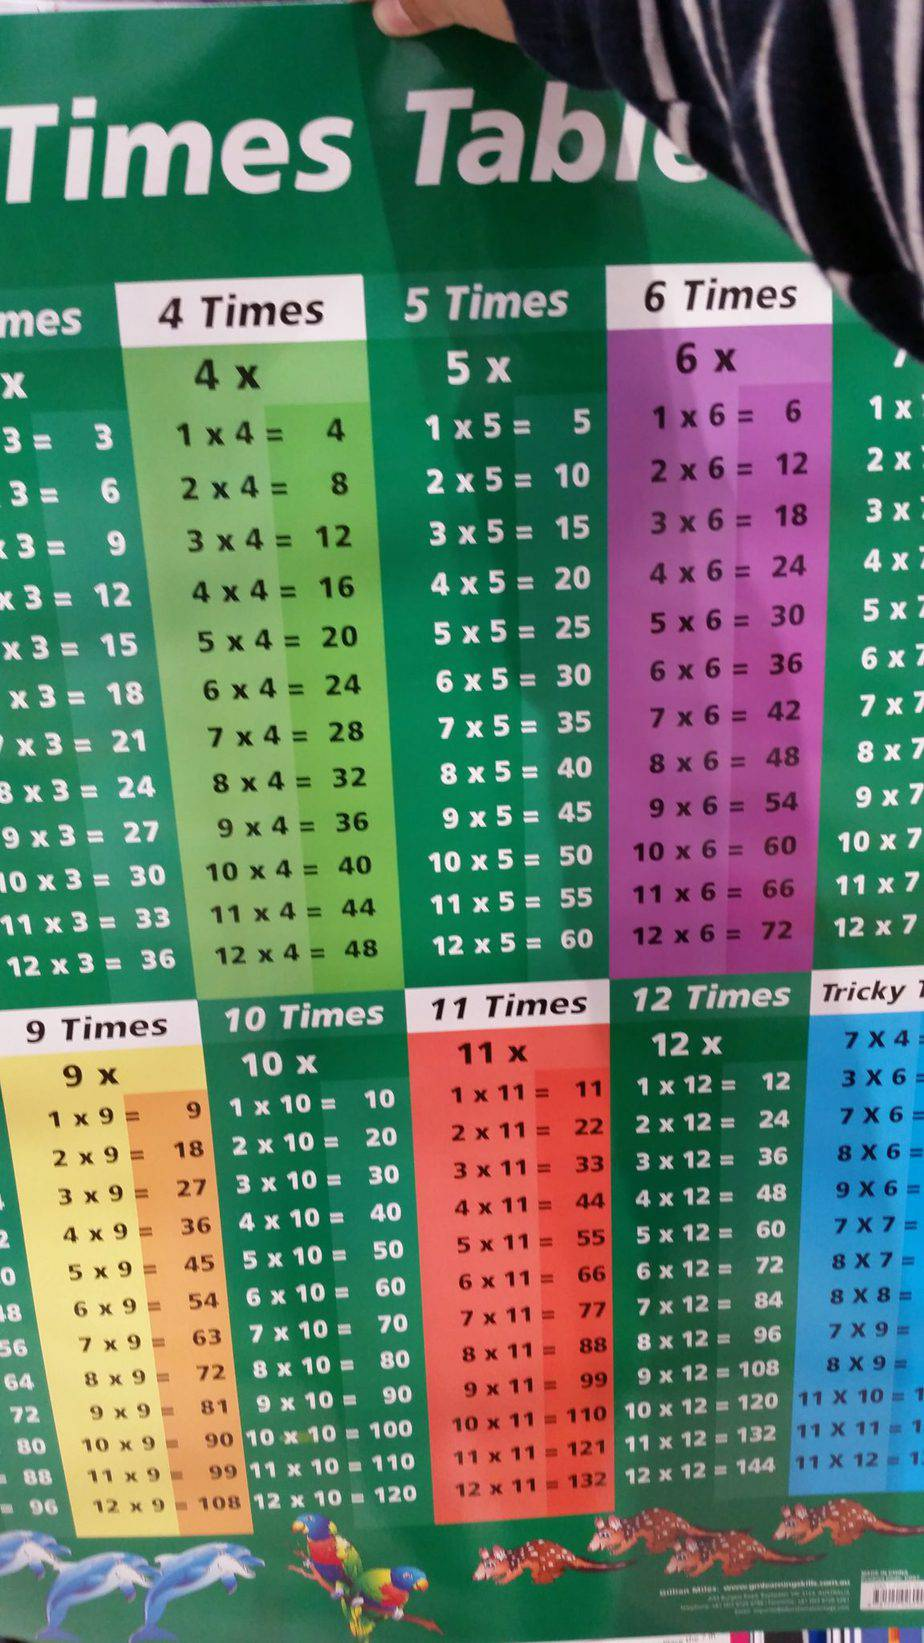 These times table posters provide colorful decorations for your homeschool room. They almost make you want to learn your mathematics!